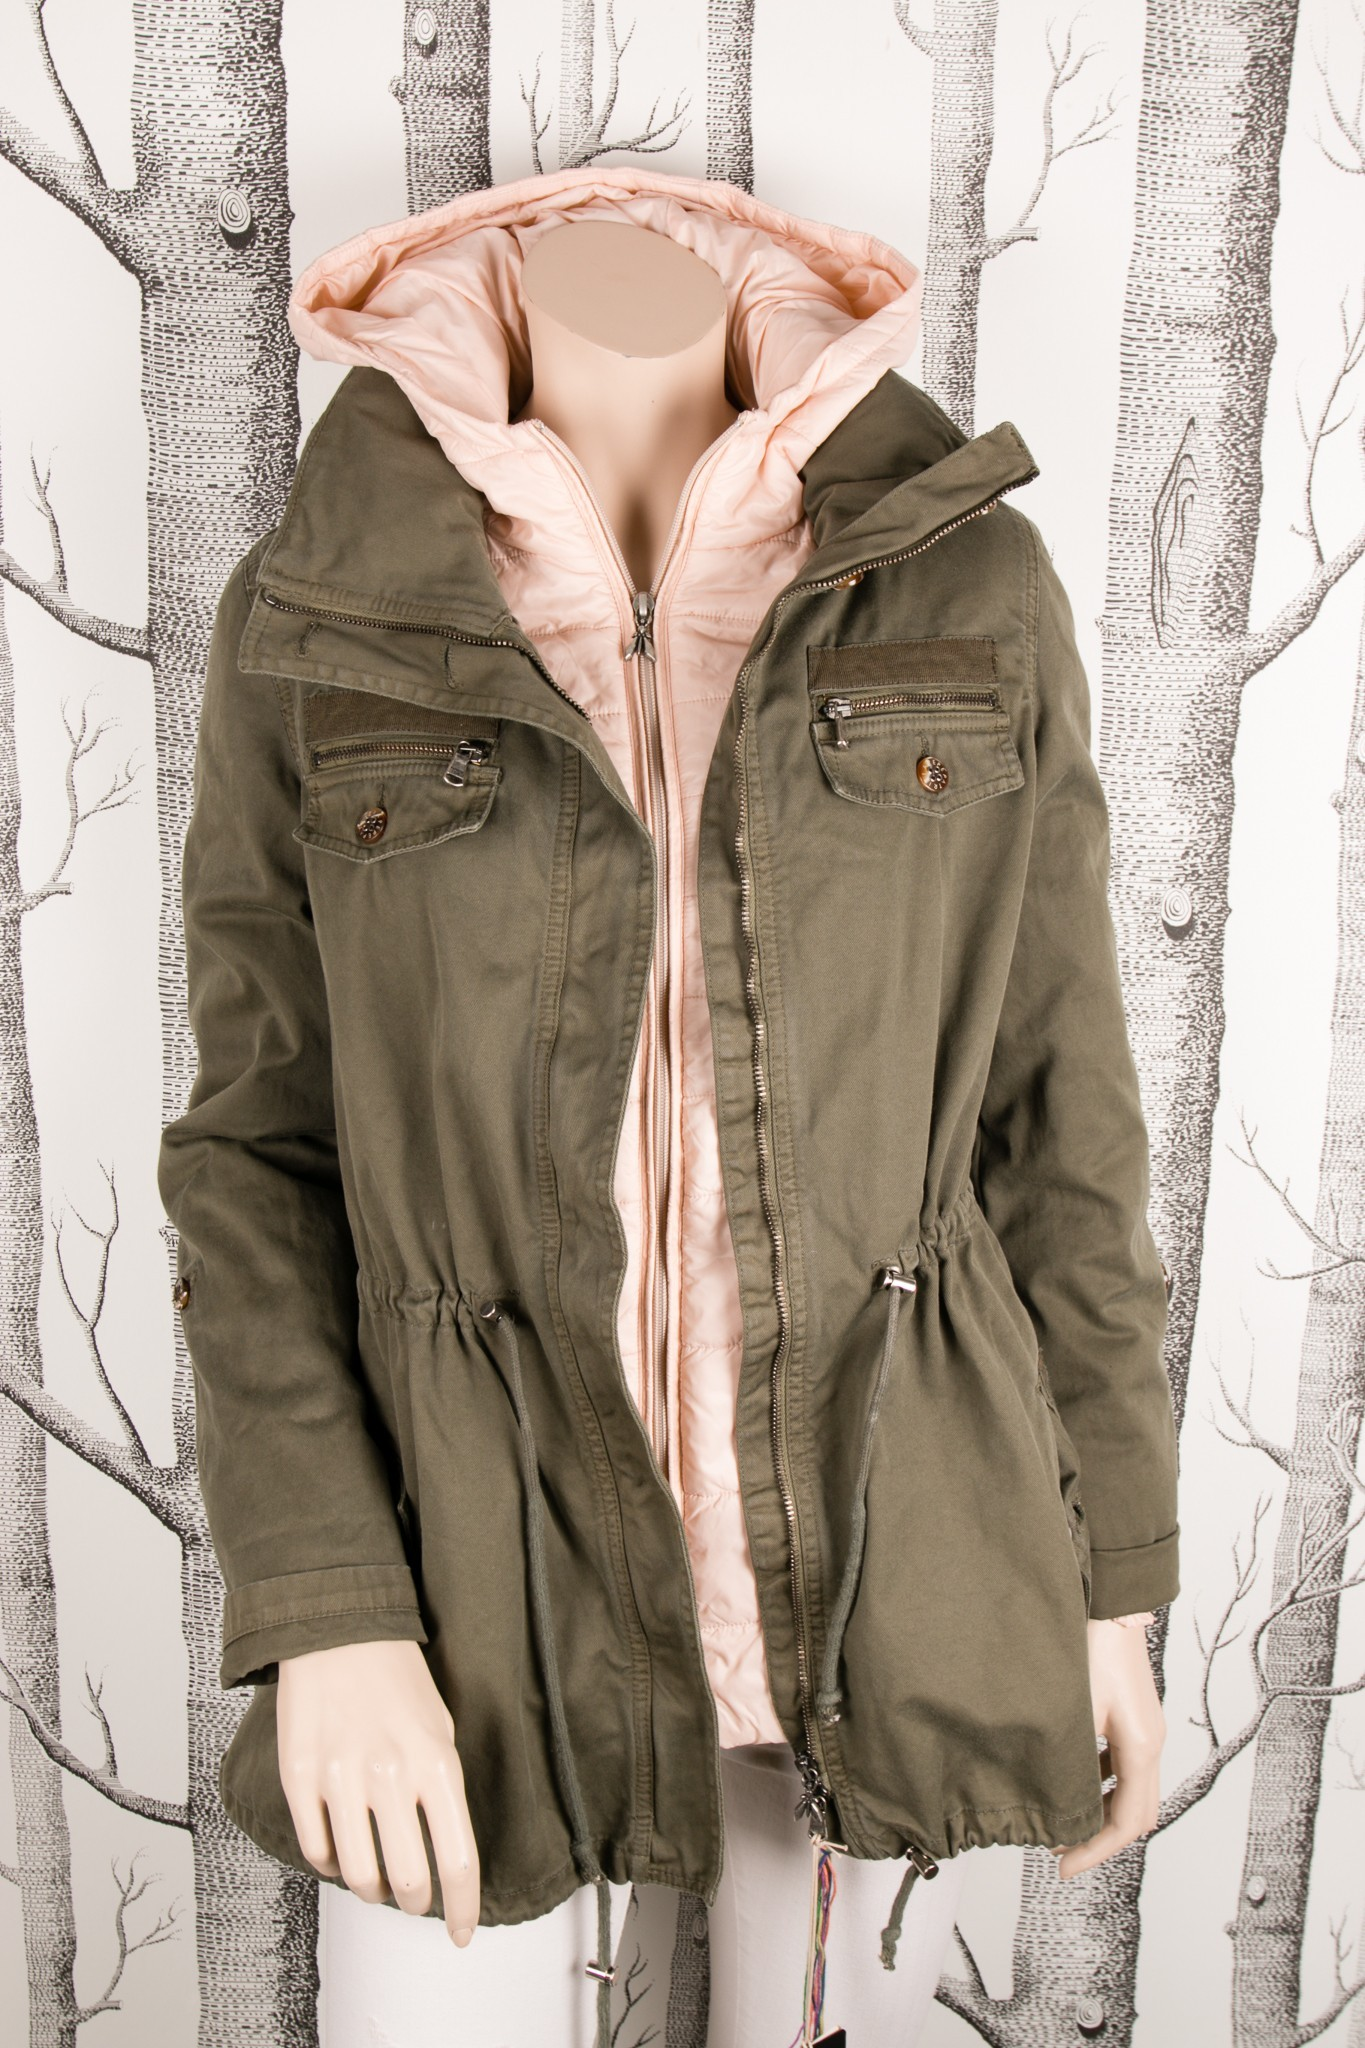 low priced b5d96 32708 Jacket 2 in one from Patrizia Pepe - A Piece Lux